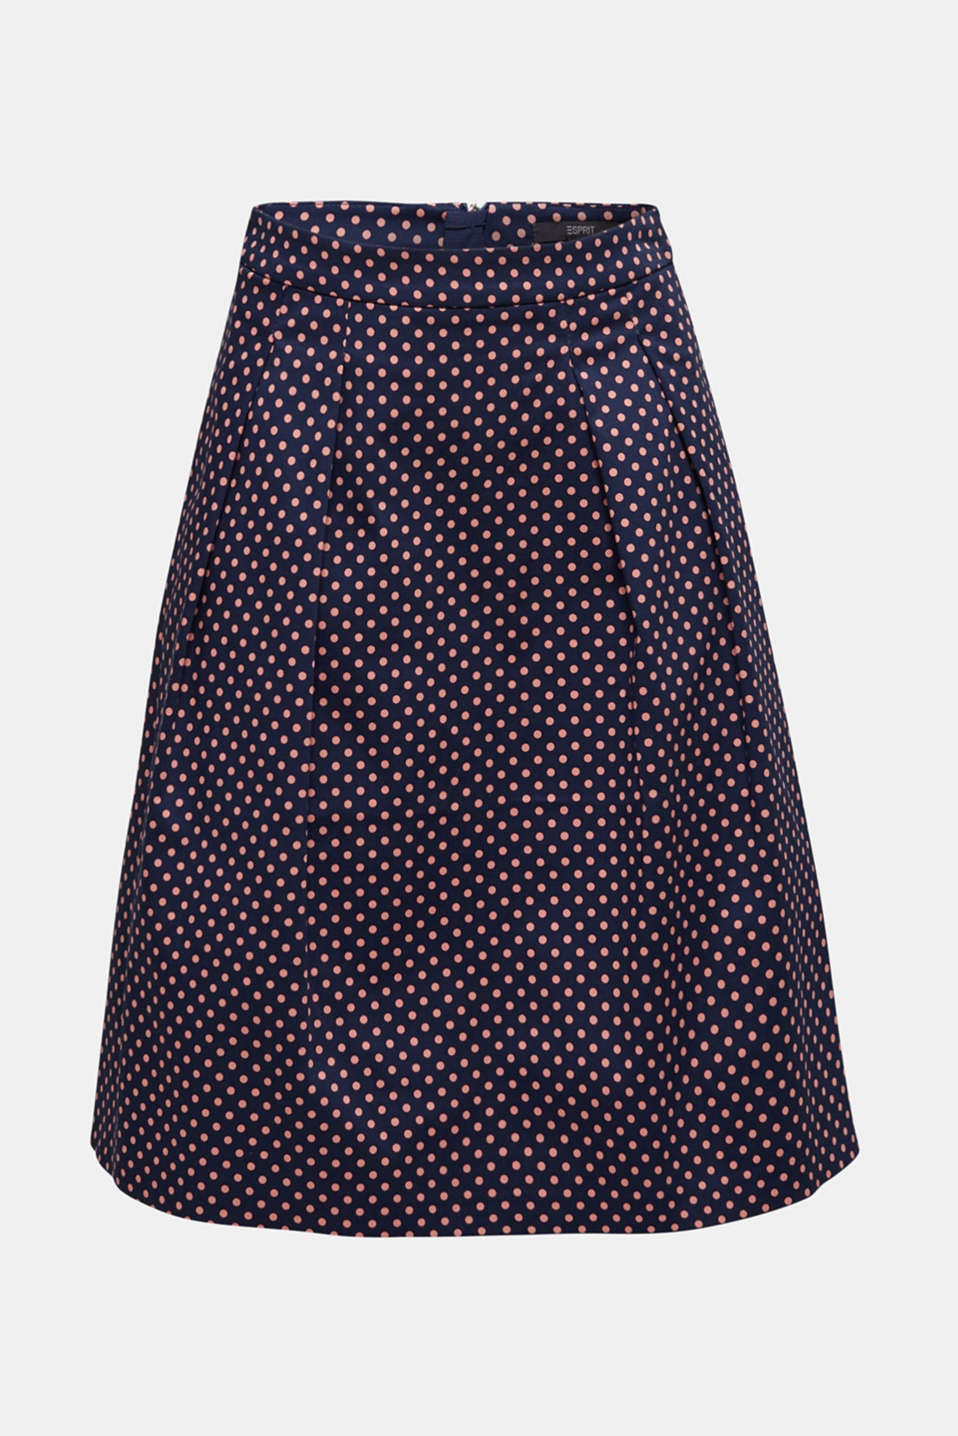 Satined polka dot skirt with stretch, NAVY 4, detail image number 7